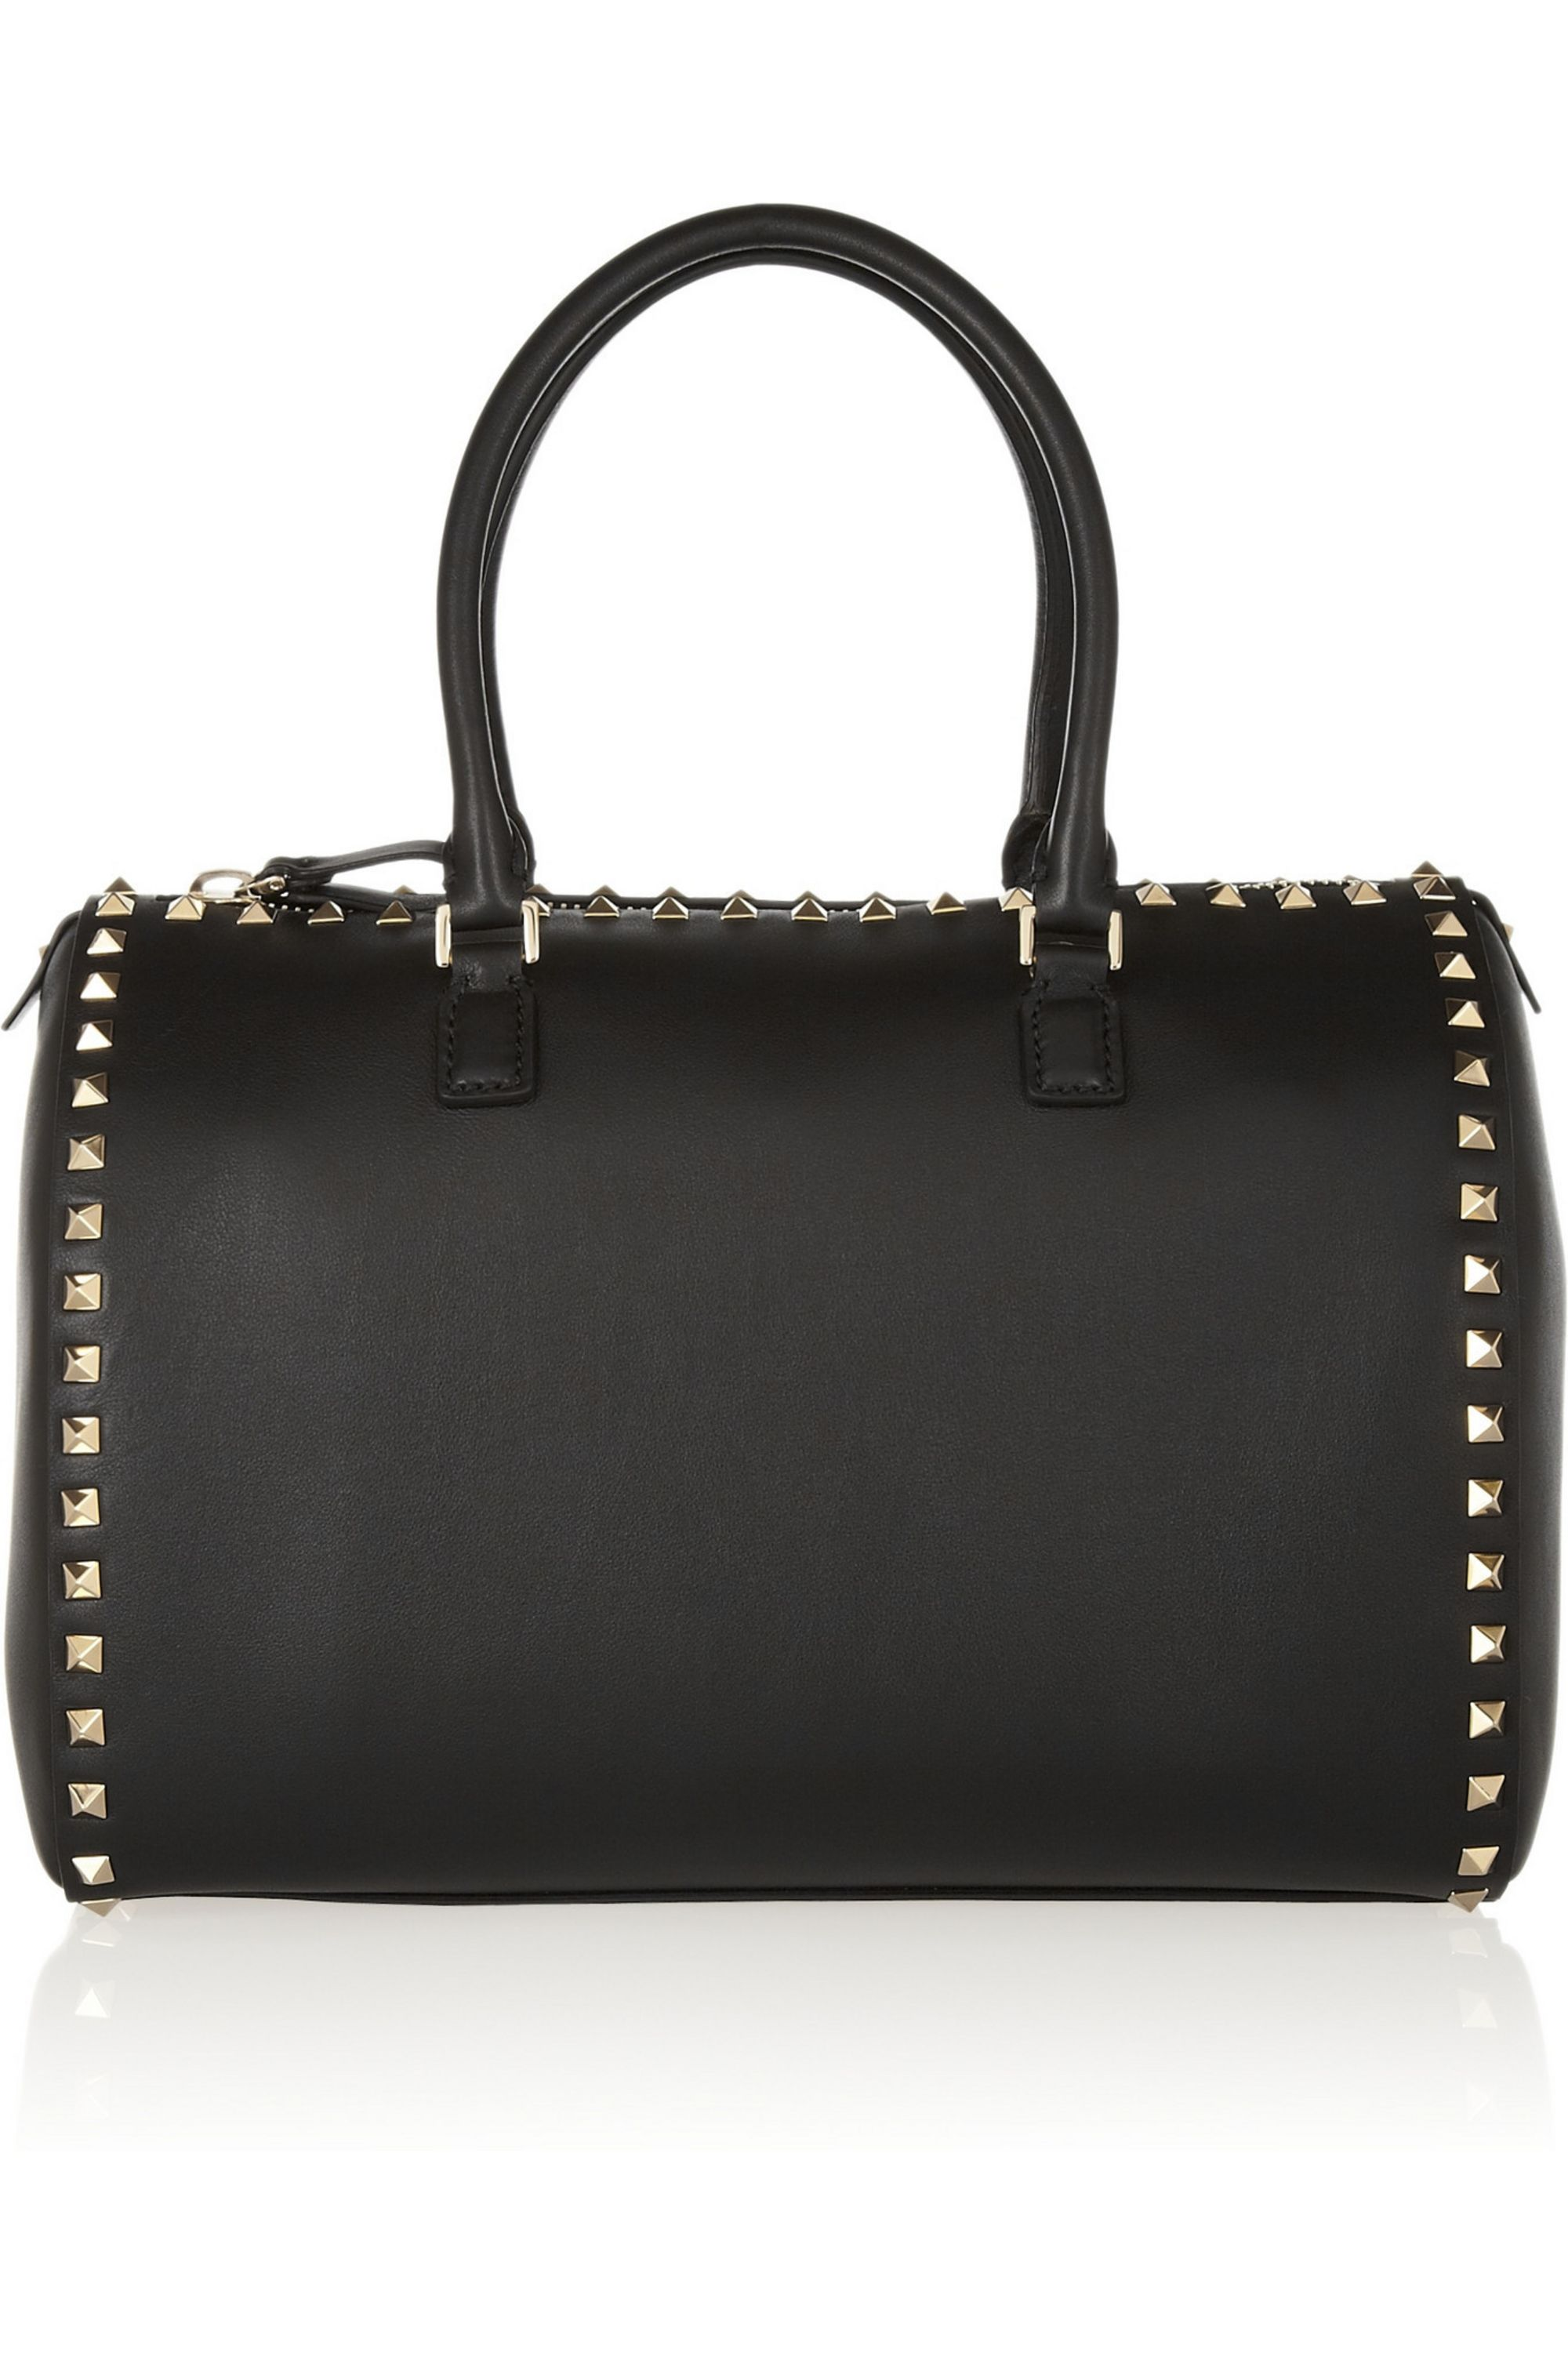 Valentino The Rockstud leather duffle bag